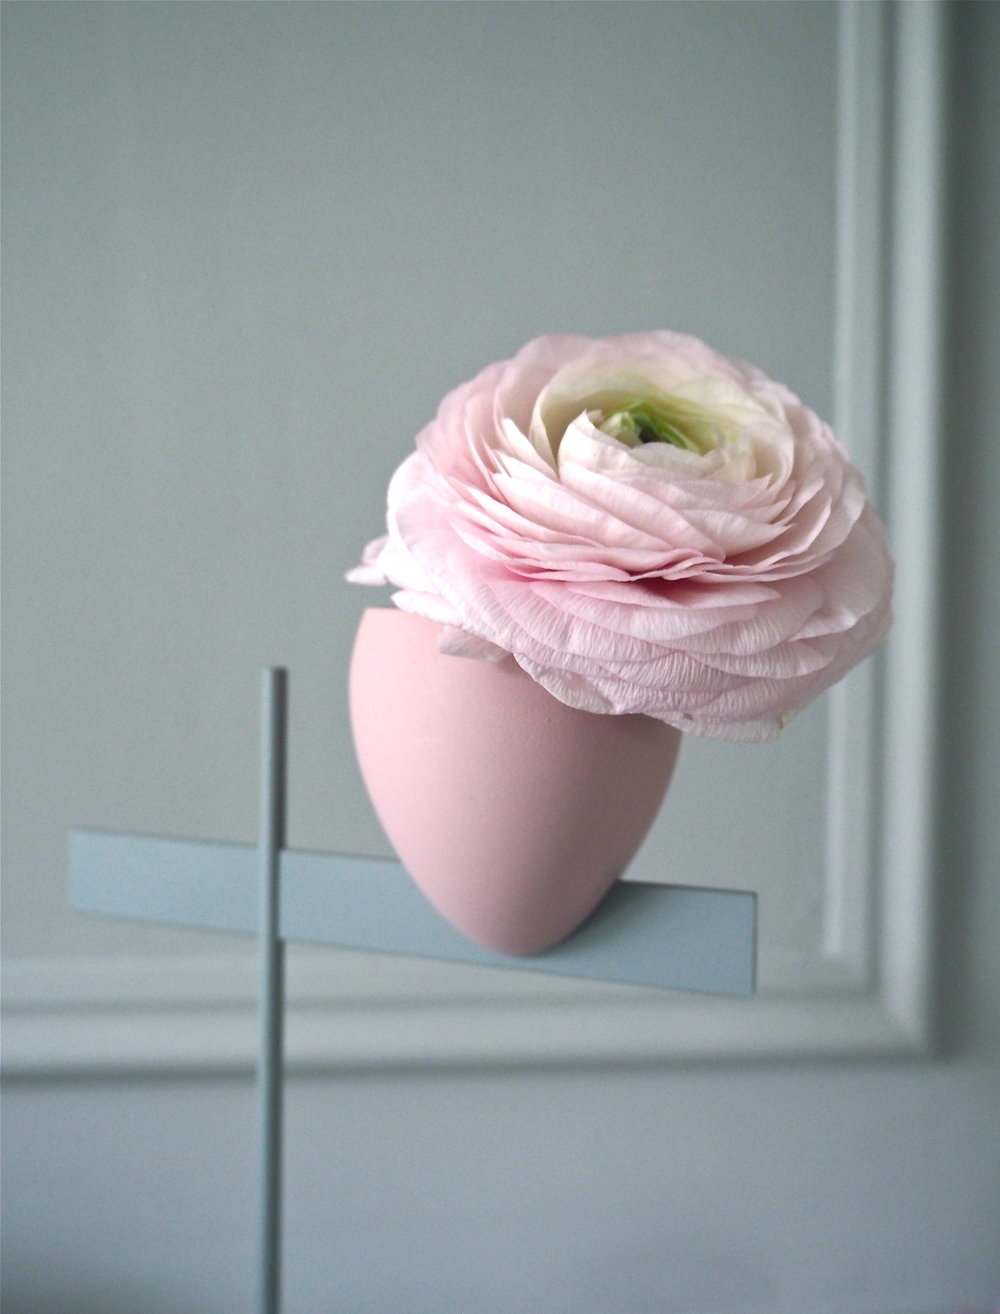 zens lifestyle chirp flower vase